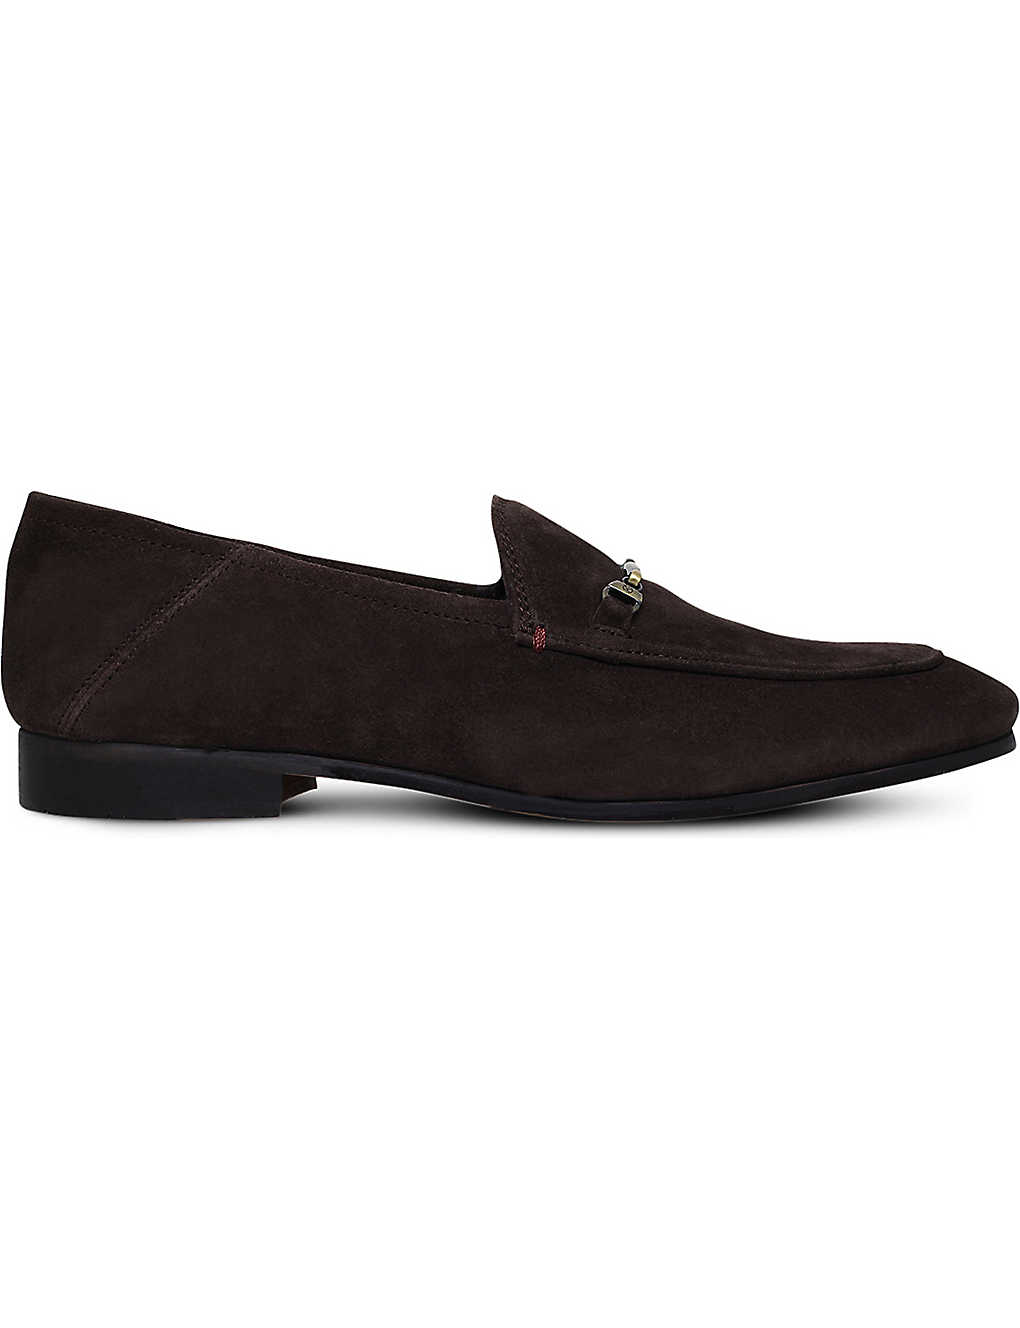 457aad8e8a6 KG KURT GEIGER - Max suede loafers